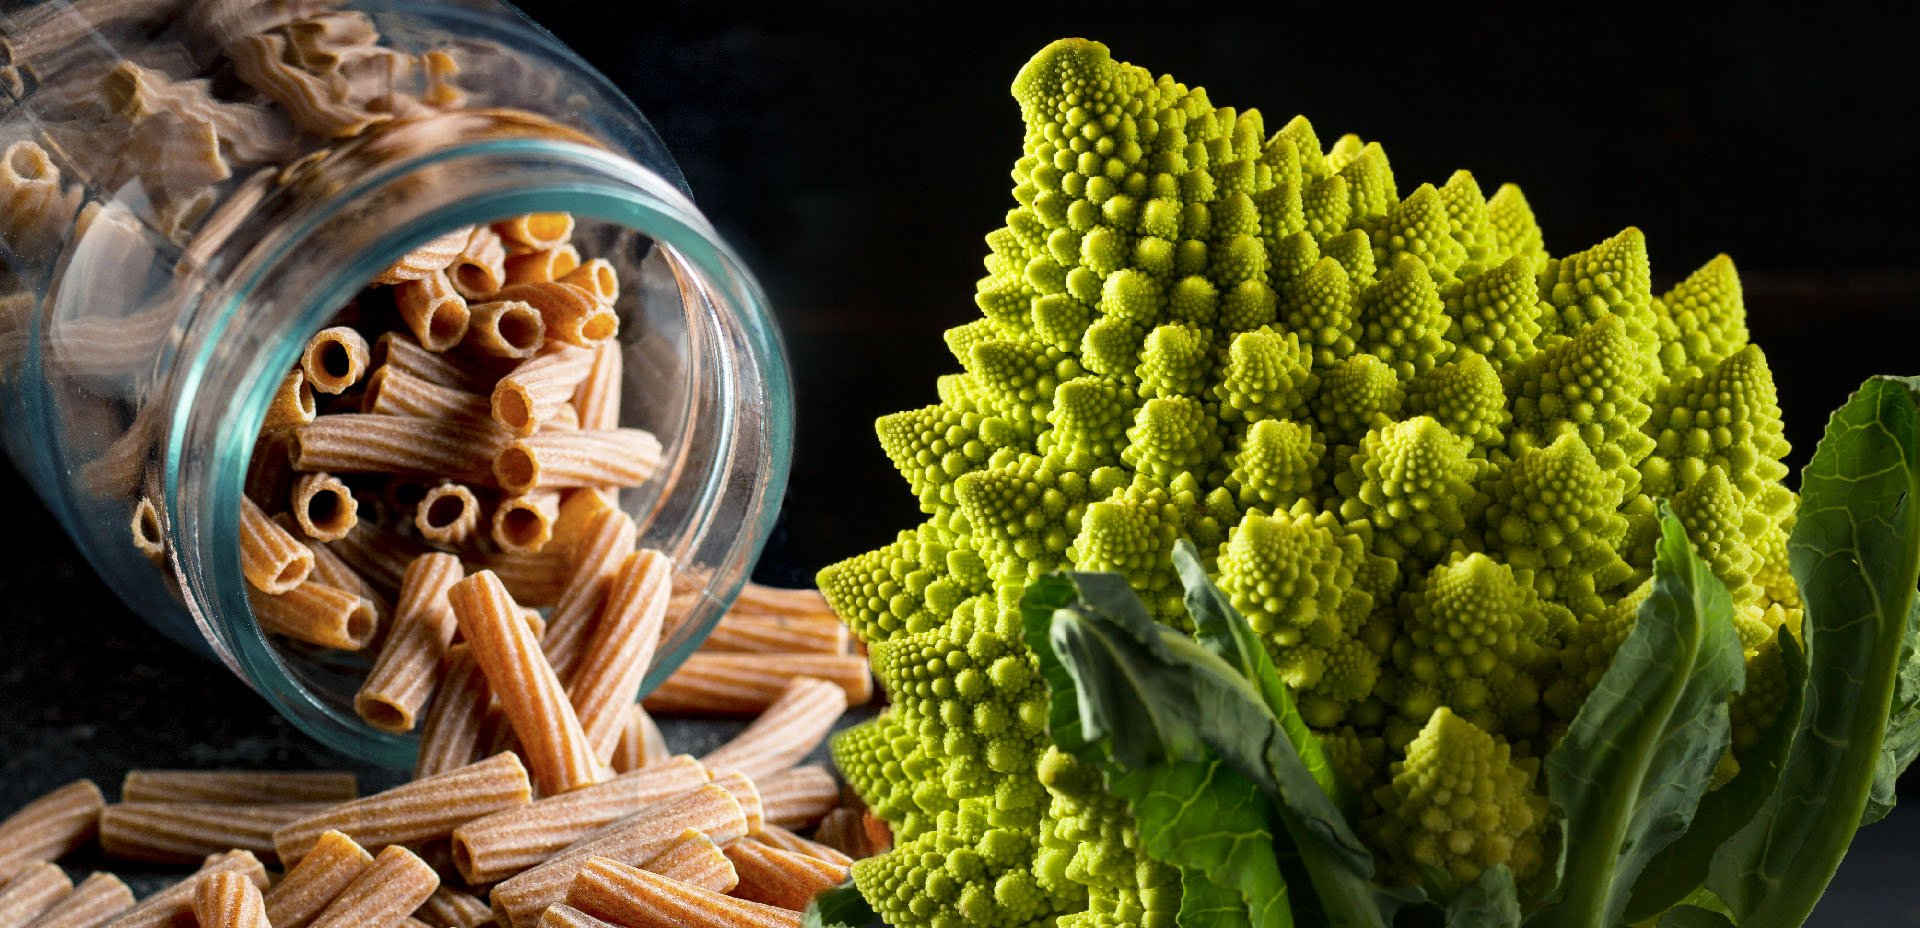 ingredienti per la Pasta con broccolo romano